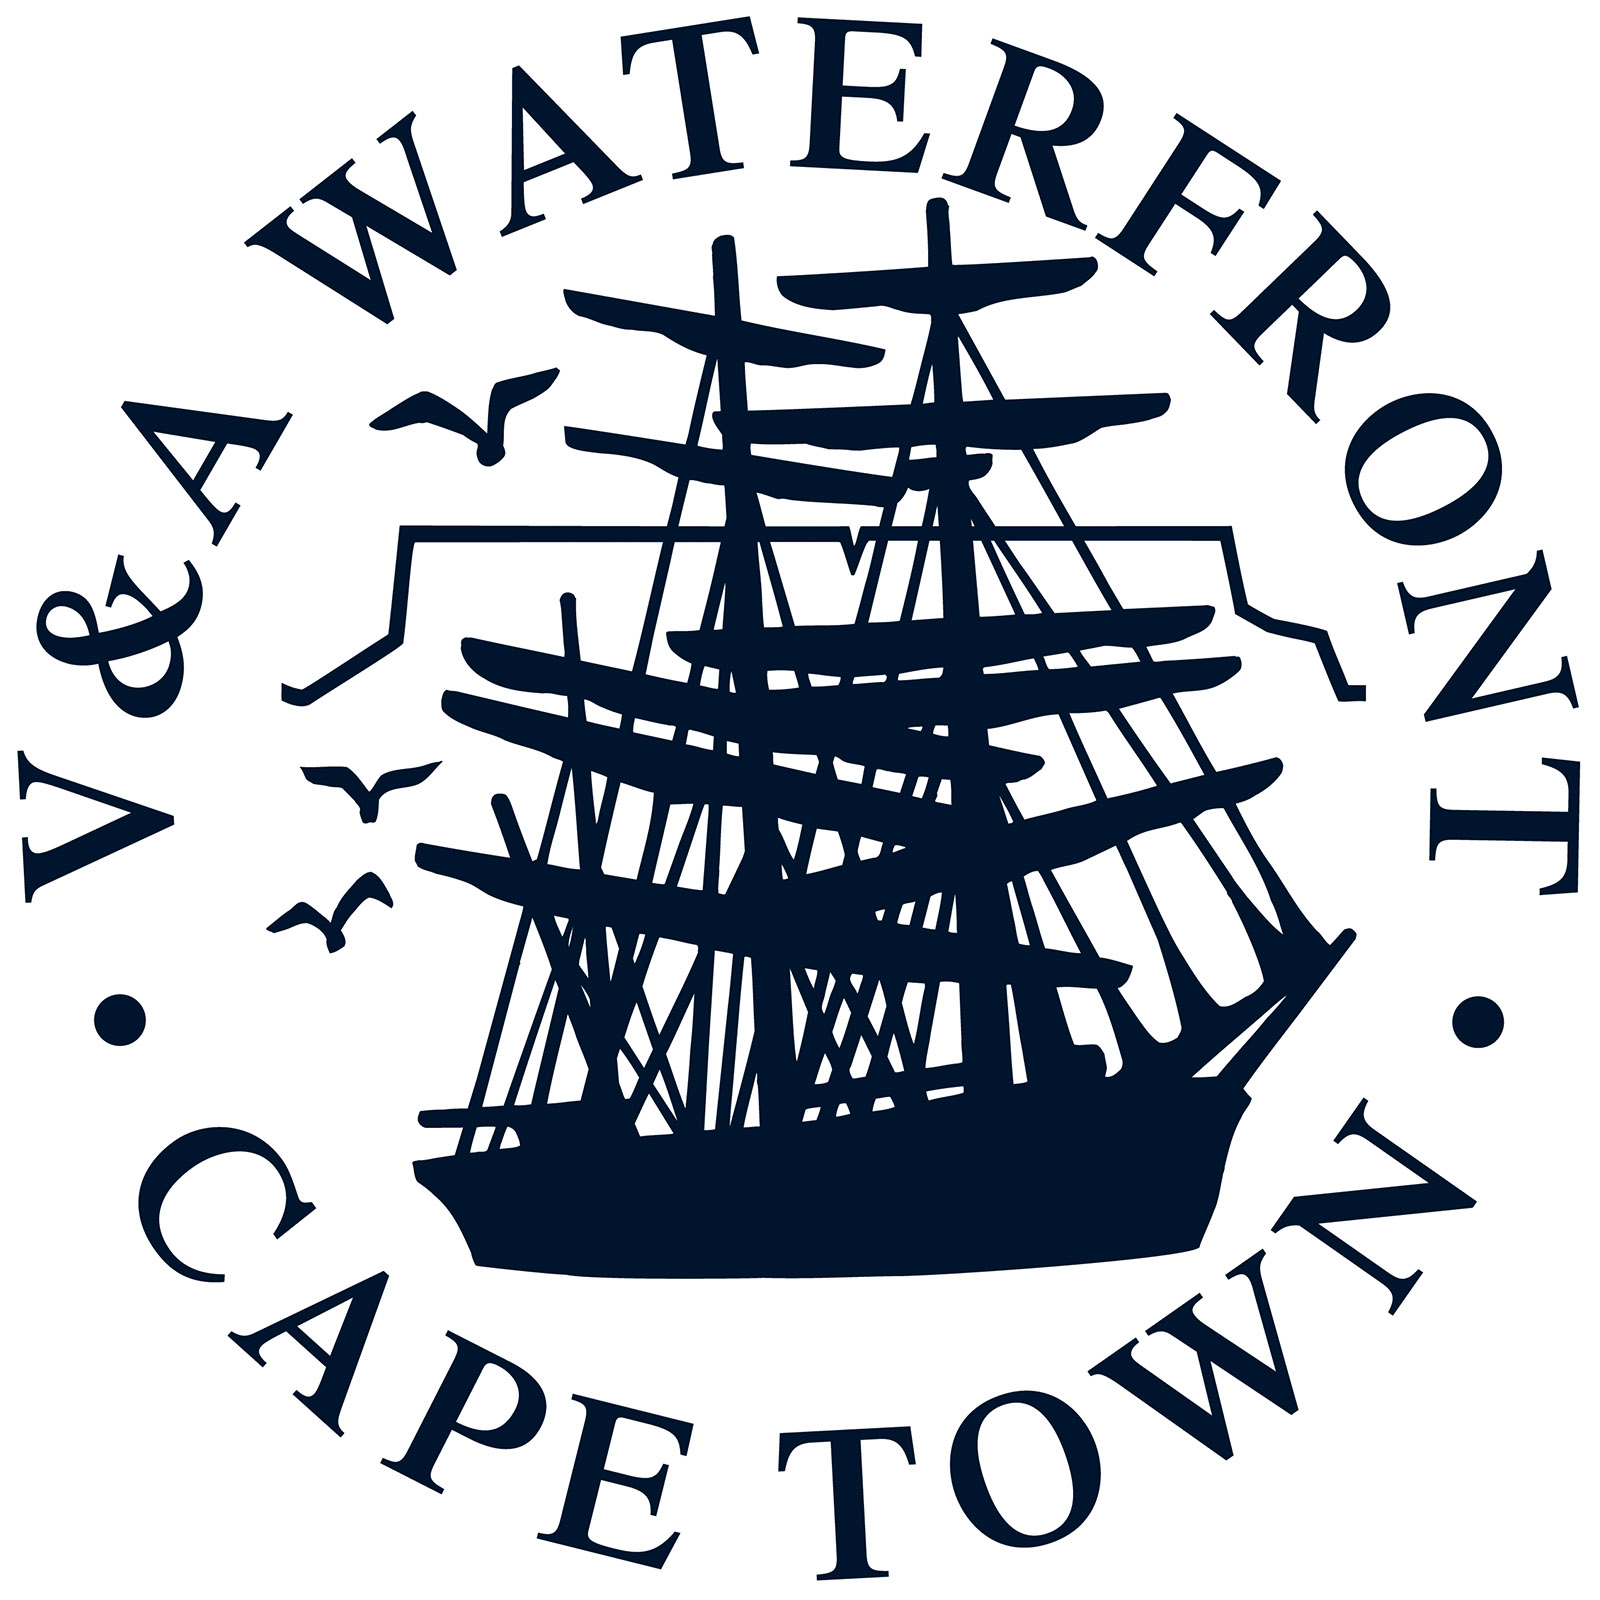 the V&A Waterfront logo for the realise a dream competition to support local entrepreneurs in the food industry in cape town